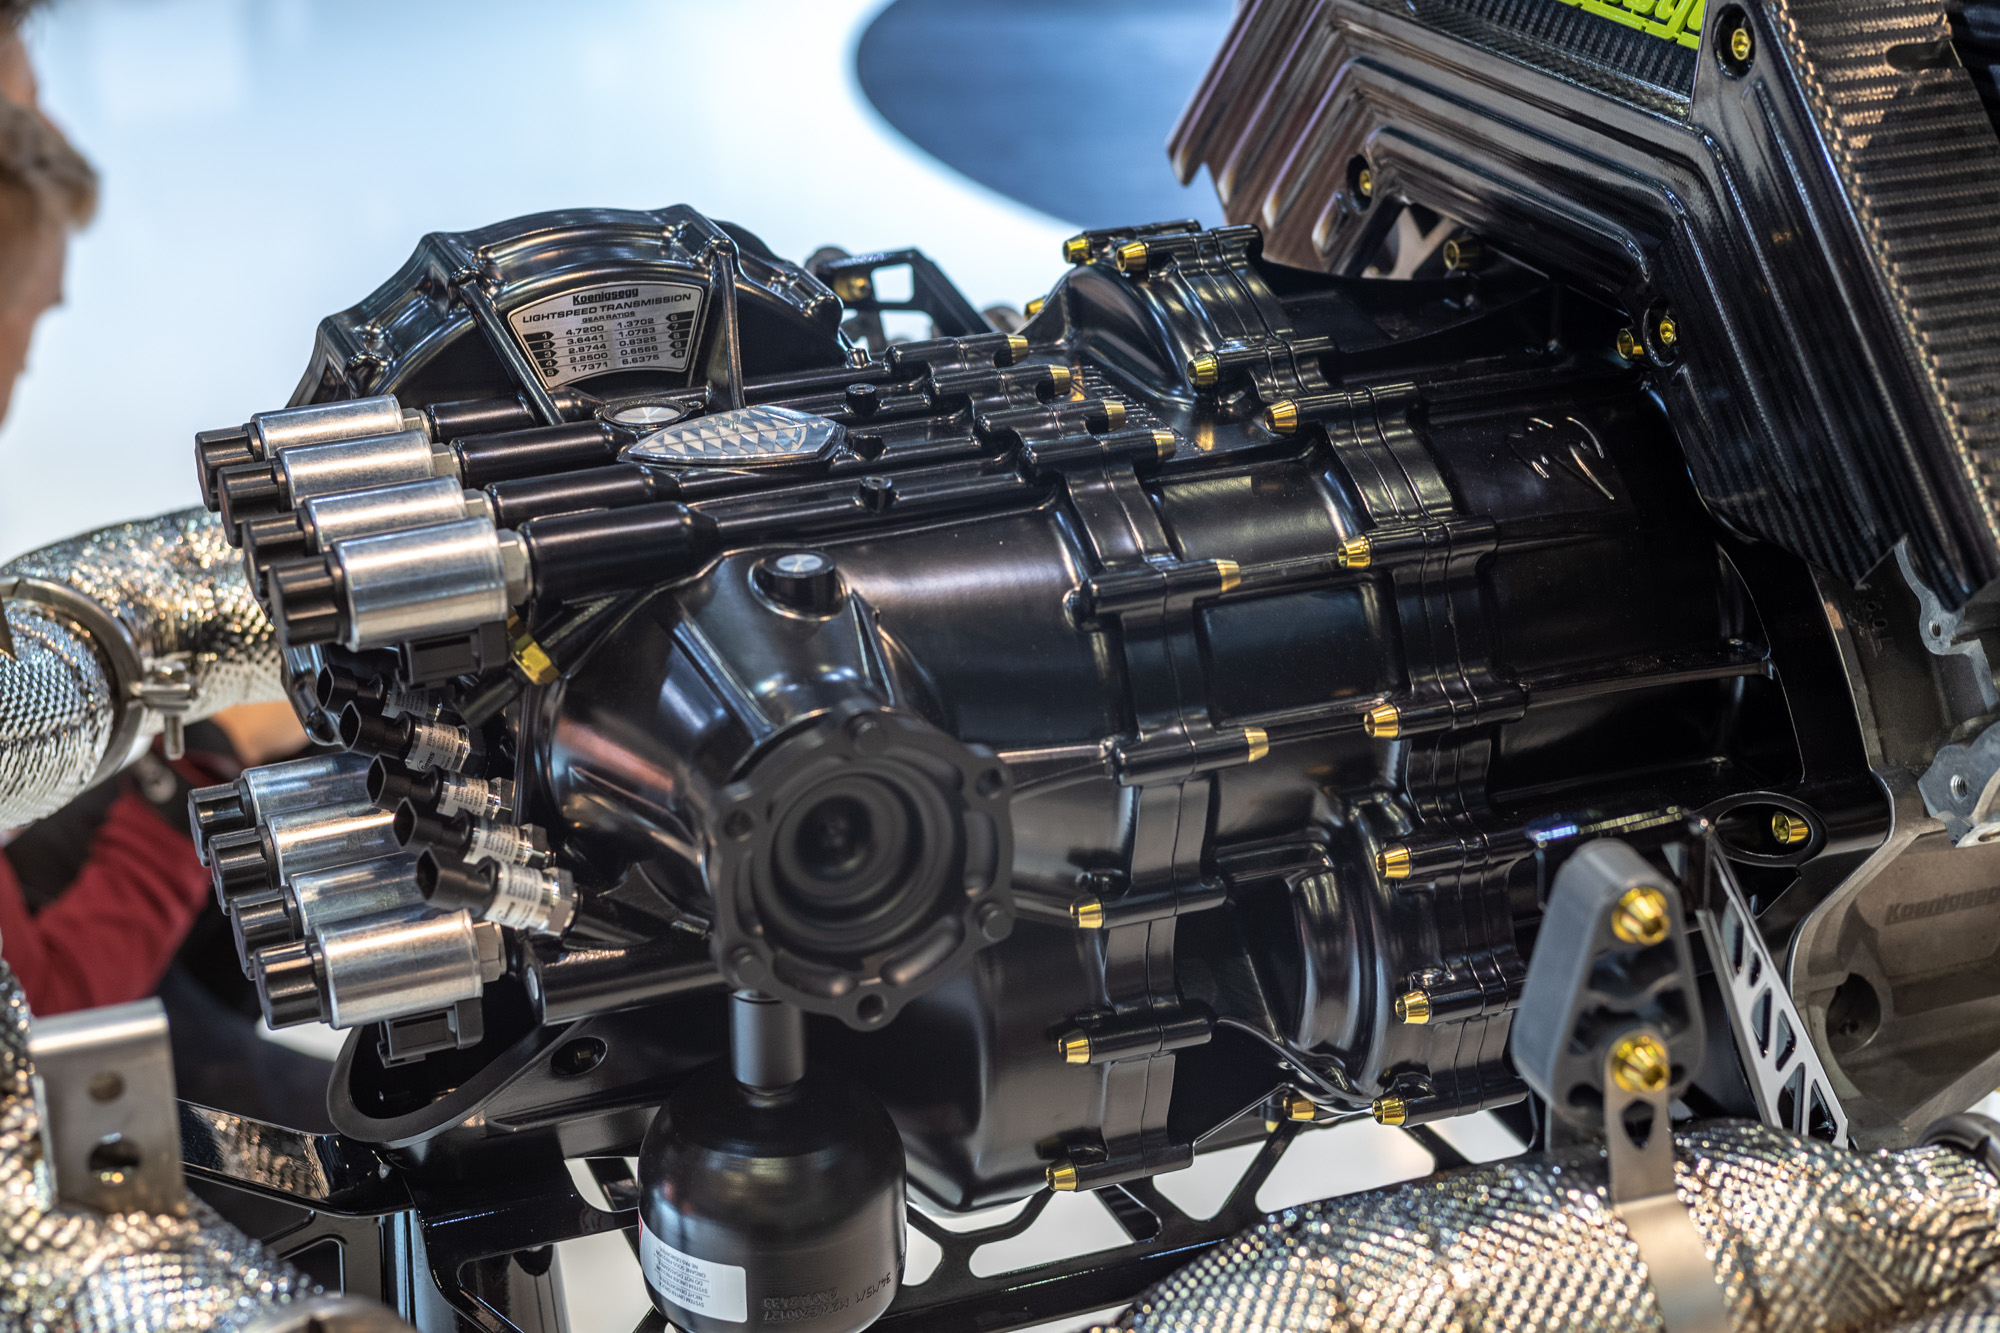 Koenigsegg Jesko - 2019 - Koenigsegg Light Speed Transmission (LST) gearbox - preview - Gims Swiss - photo by Steven Wade